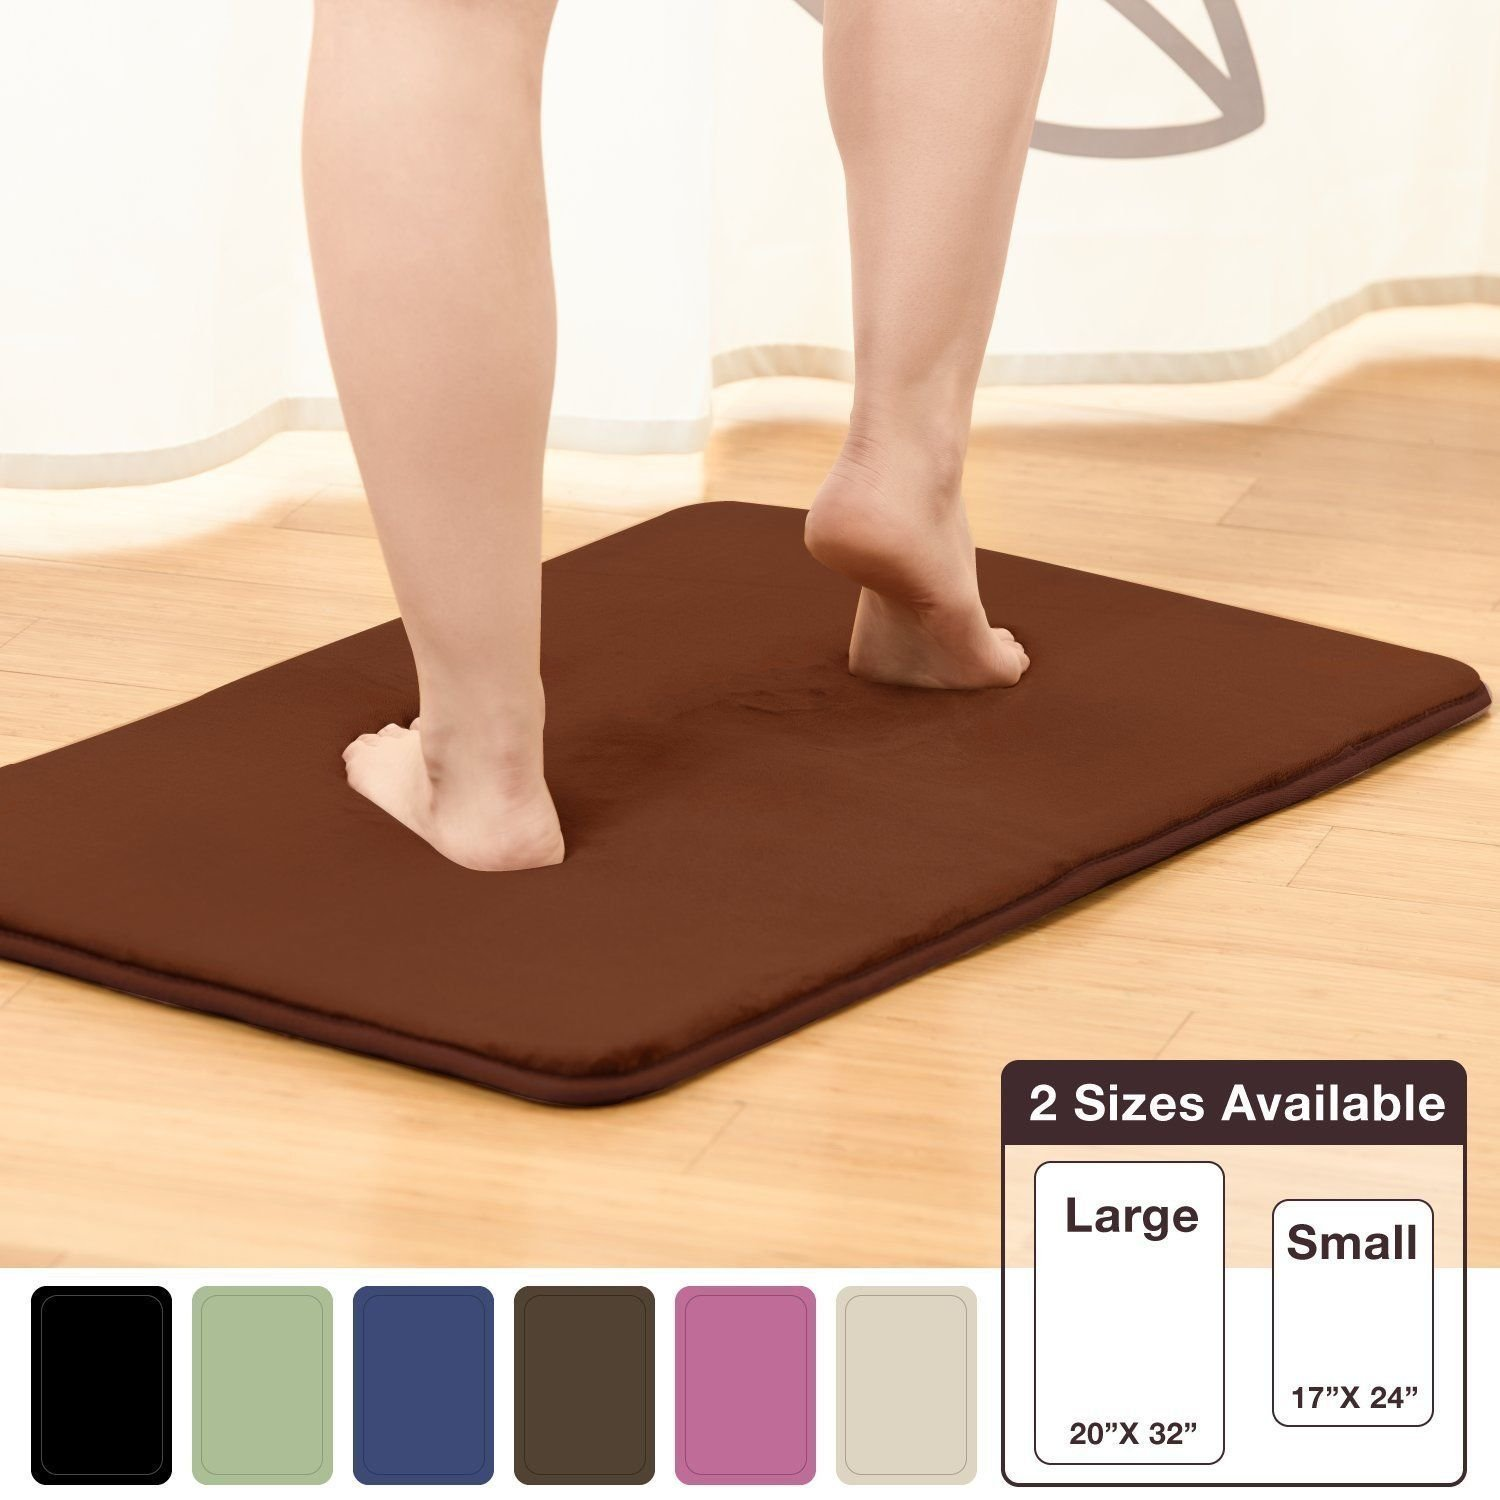 Cheap Dark Brown Bath Mat Find Dark Brown Bath Mat Deals On Line At Alibaba Com